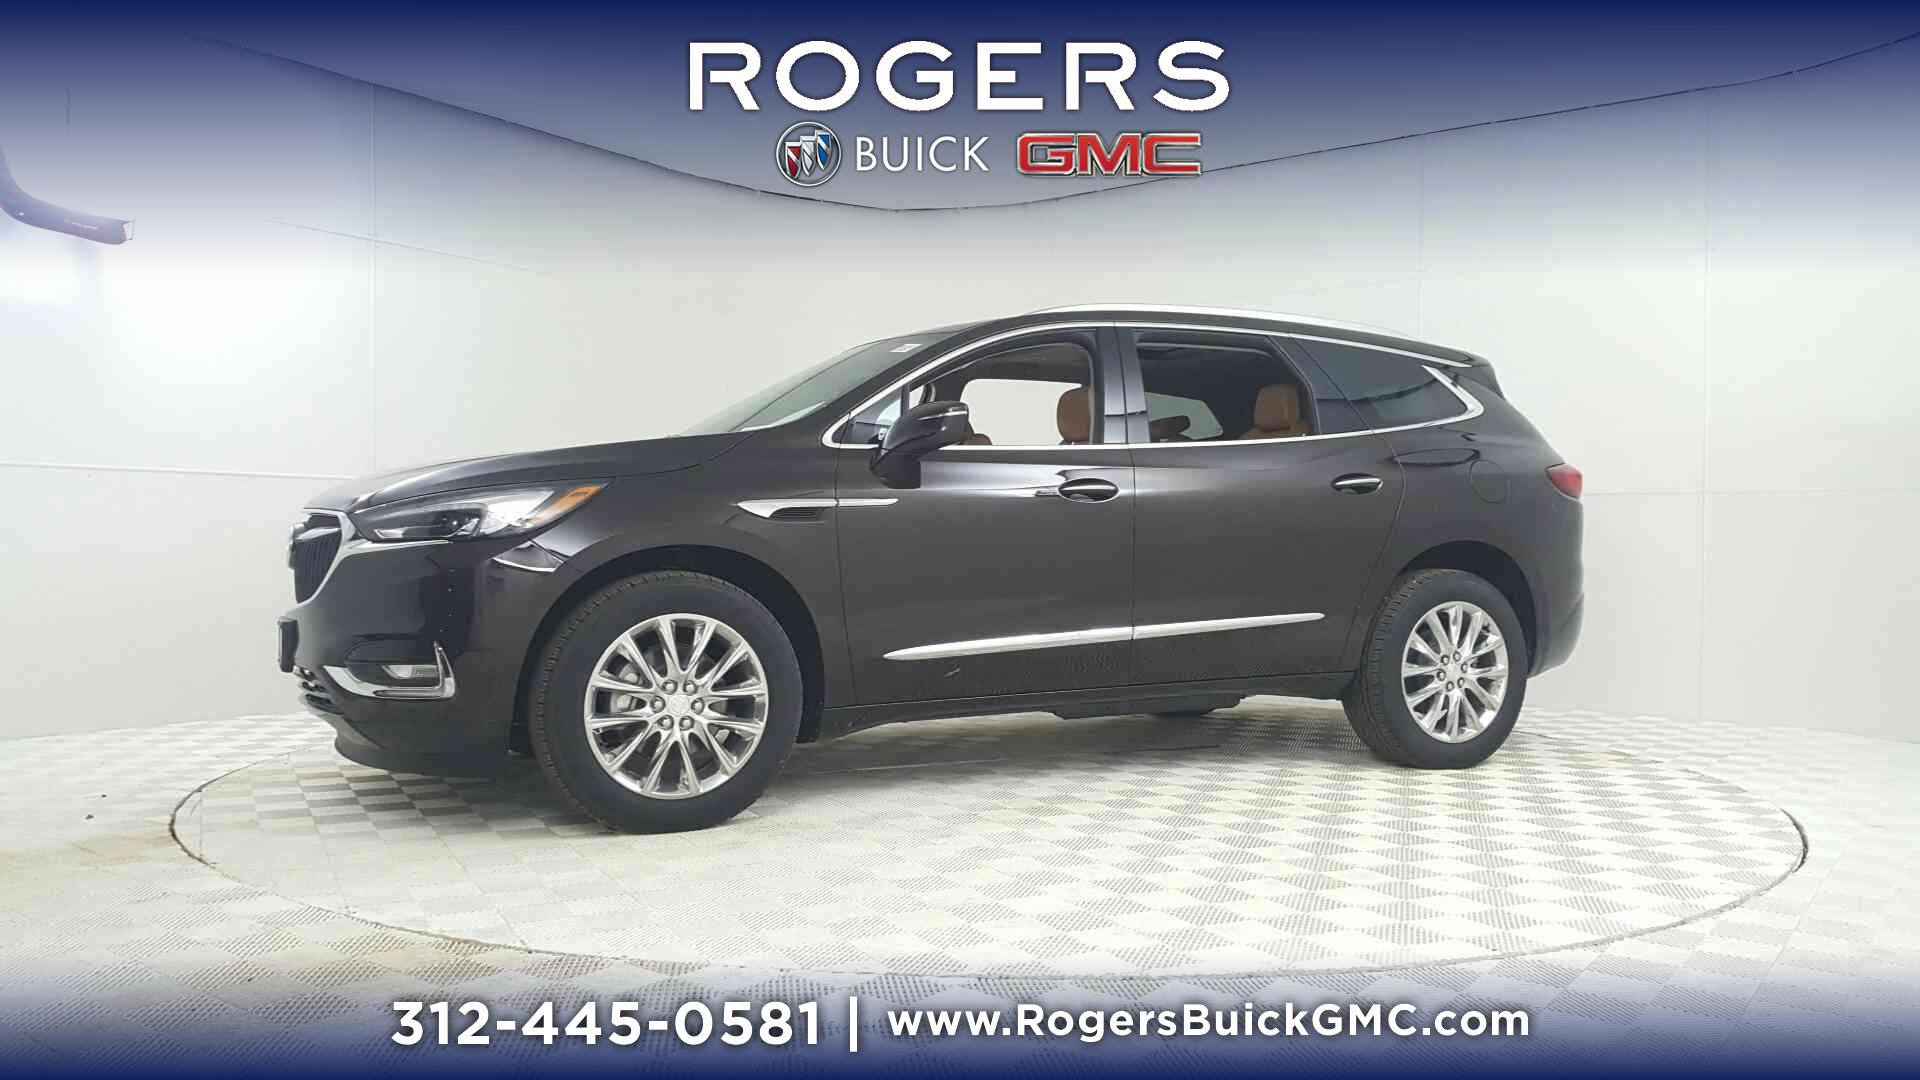 Rogers Buick GMC in Chicago - New and Pre-owned Vehicles